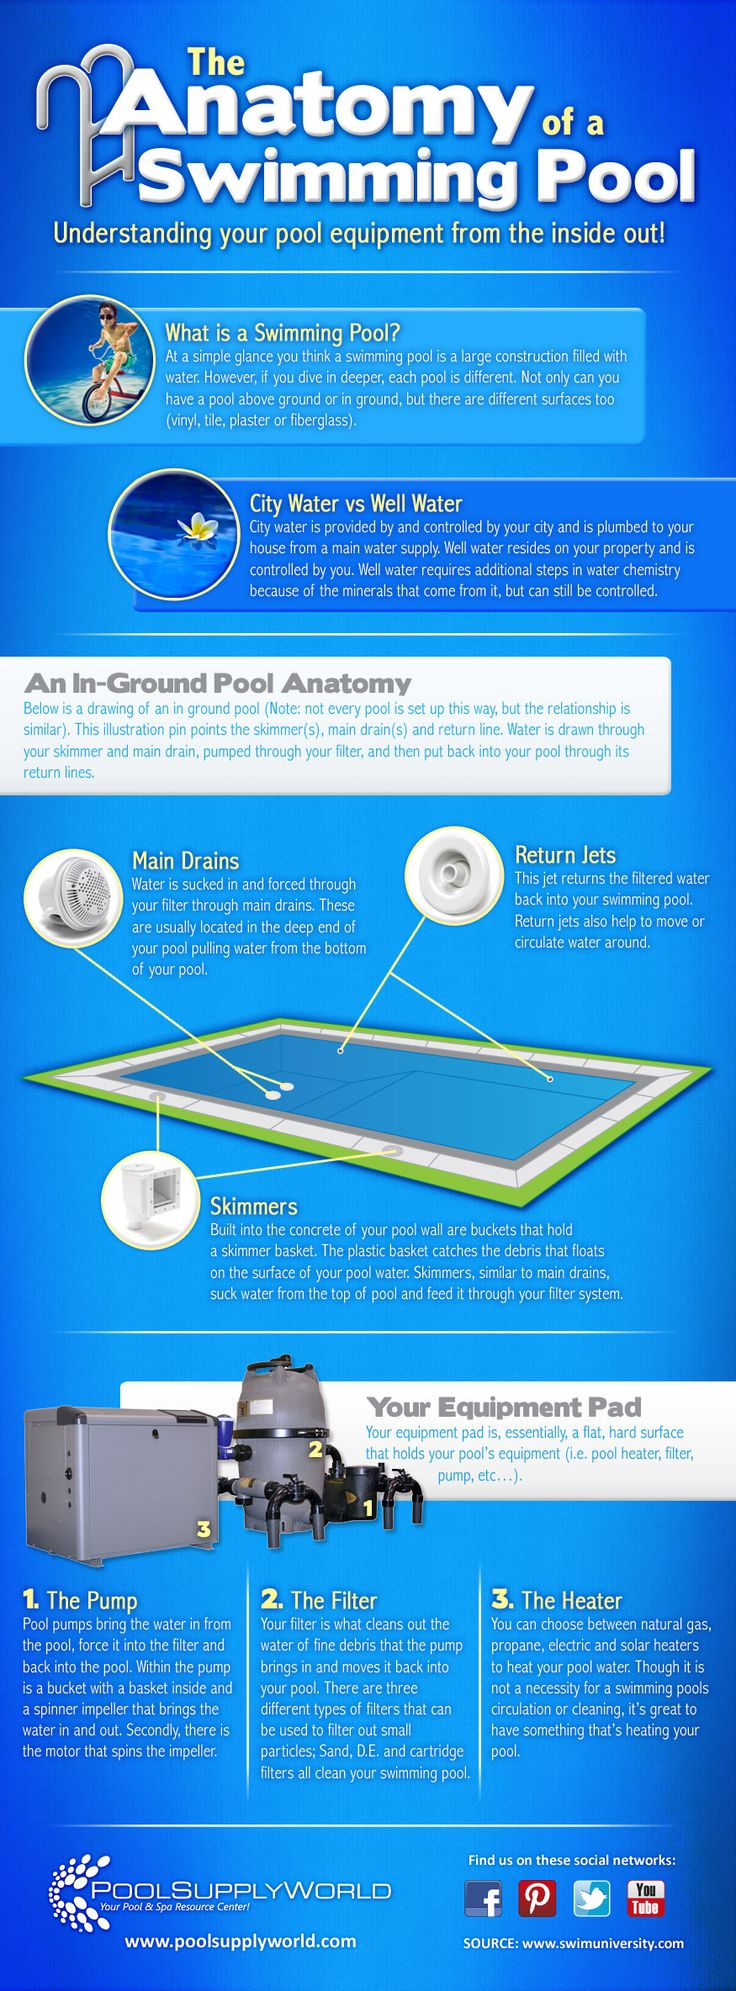 Charming The Anatomy Of A Swimming Pool [Infographic]